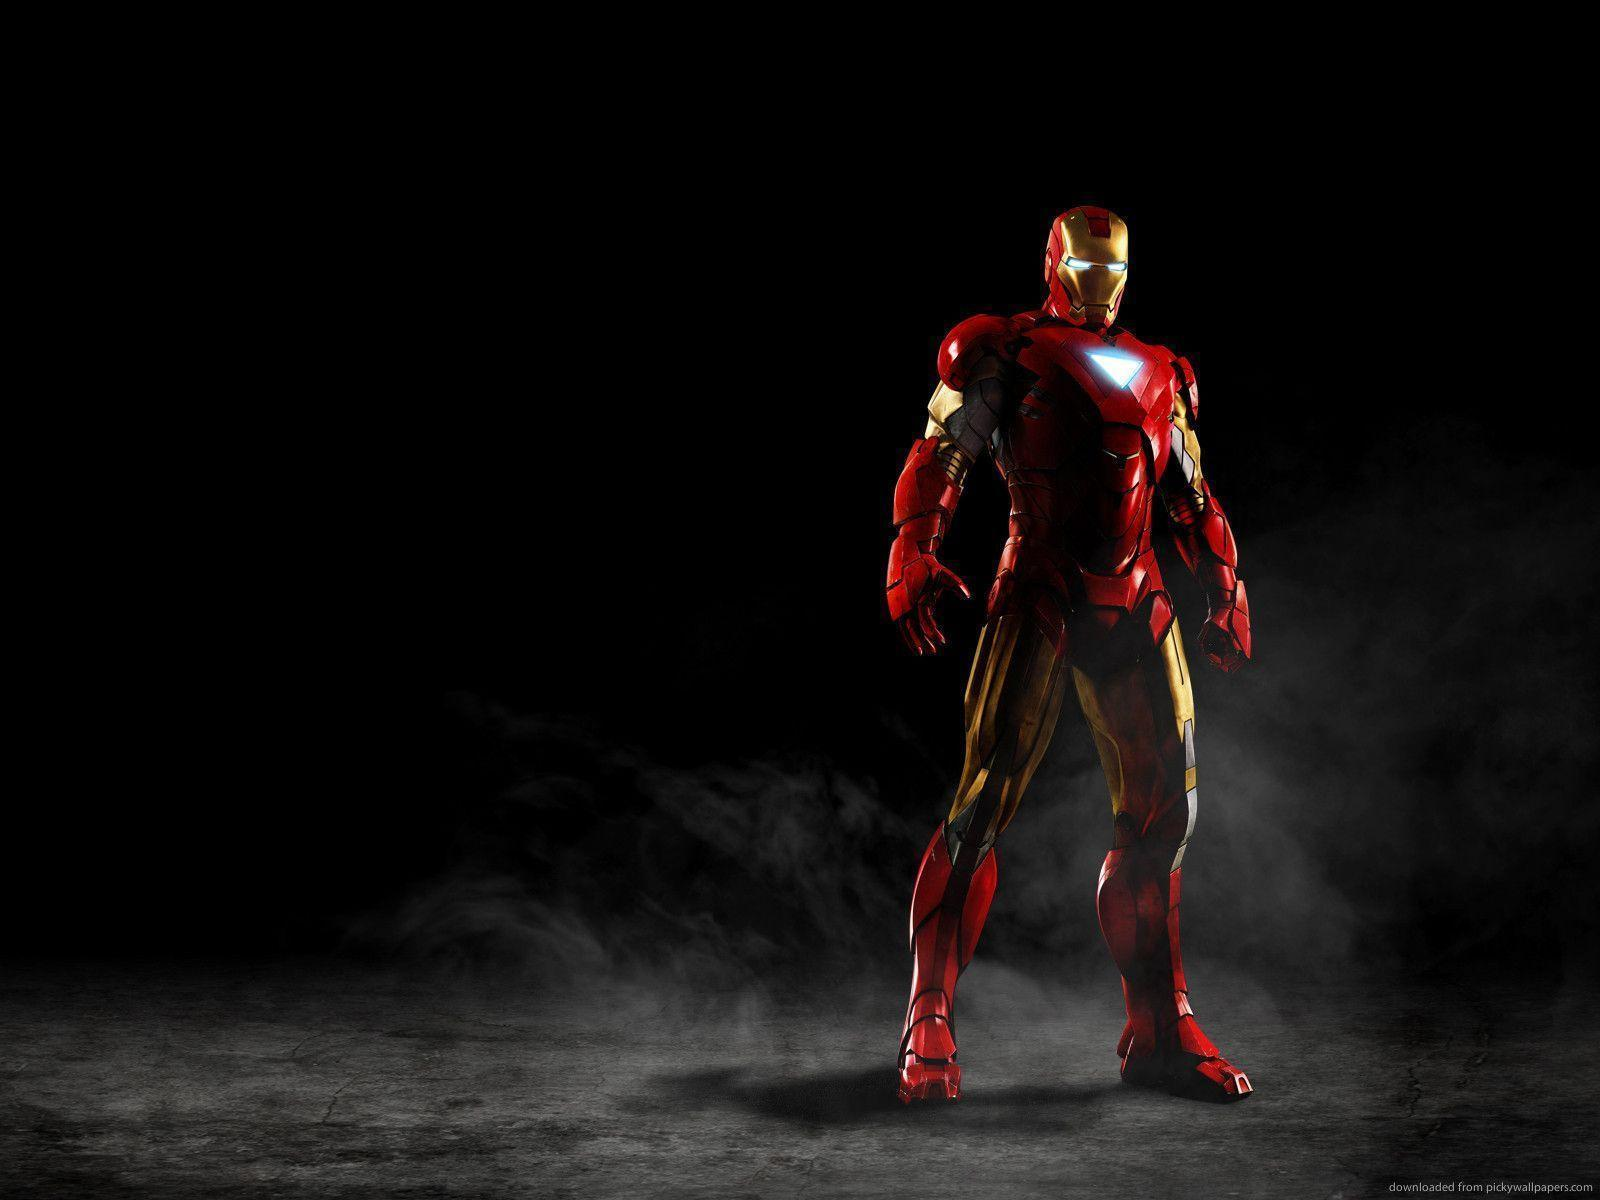 Download 1600x1200 Iron Man Battle Suit Wallpapers